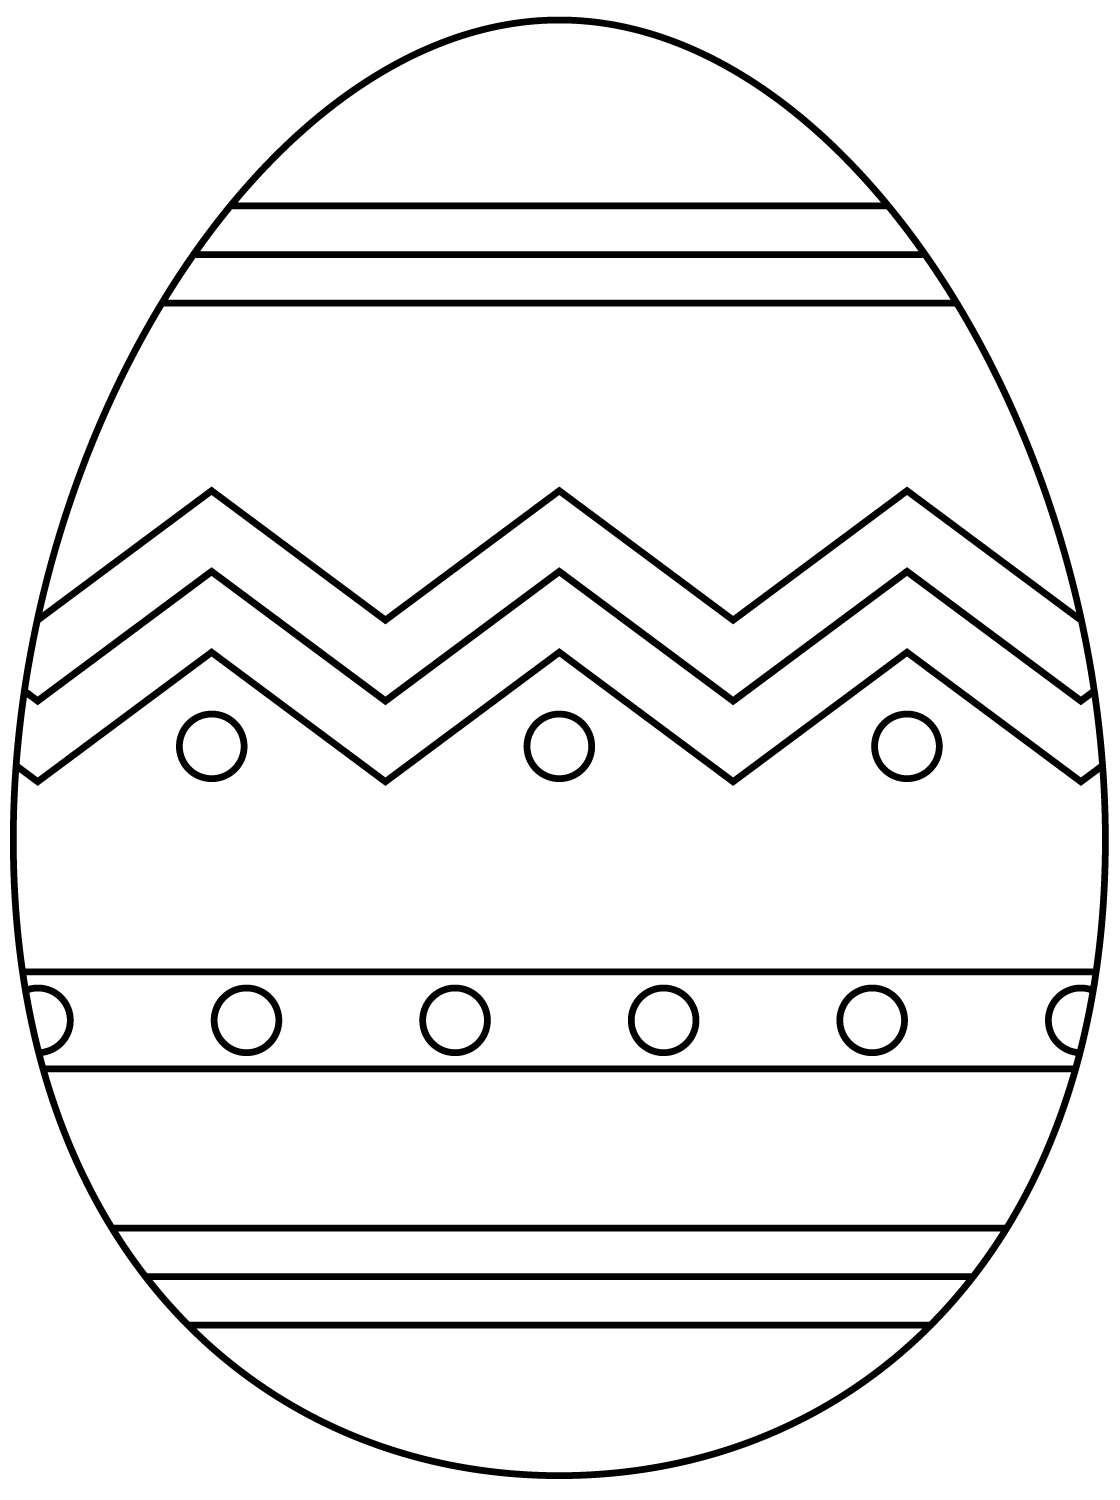 Heart Easter Eggs Coloring Page